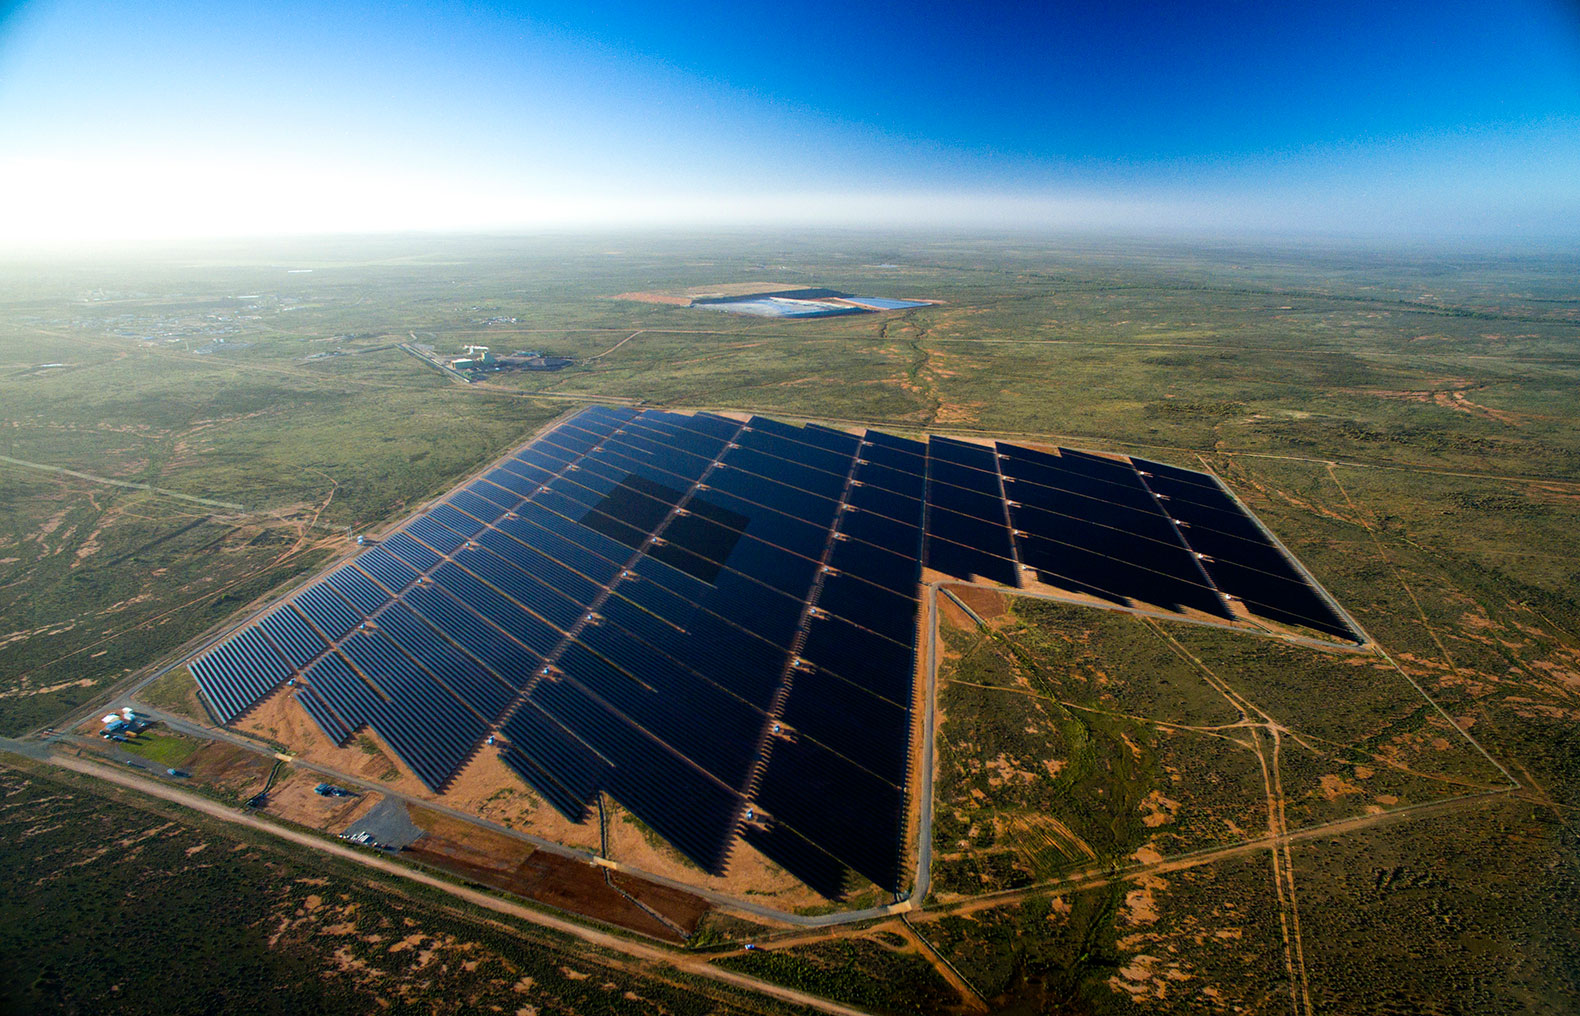 Australia's solar energy capacity could almost double in one year